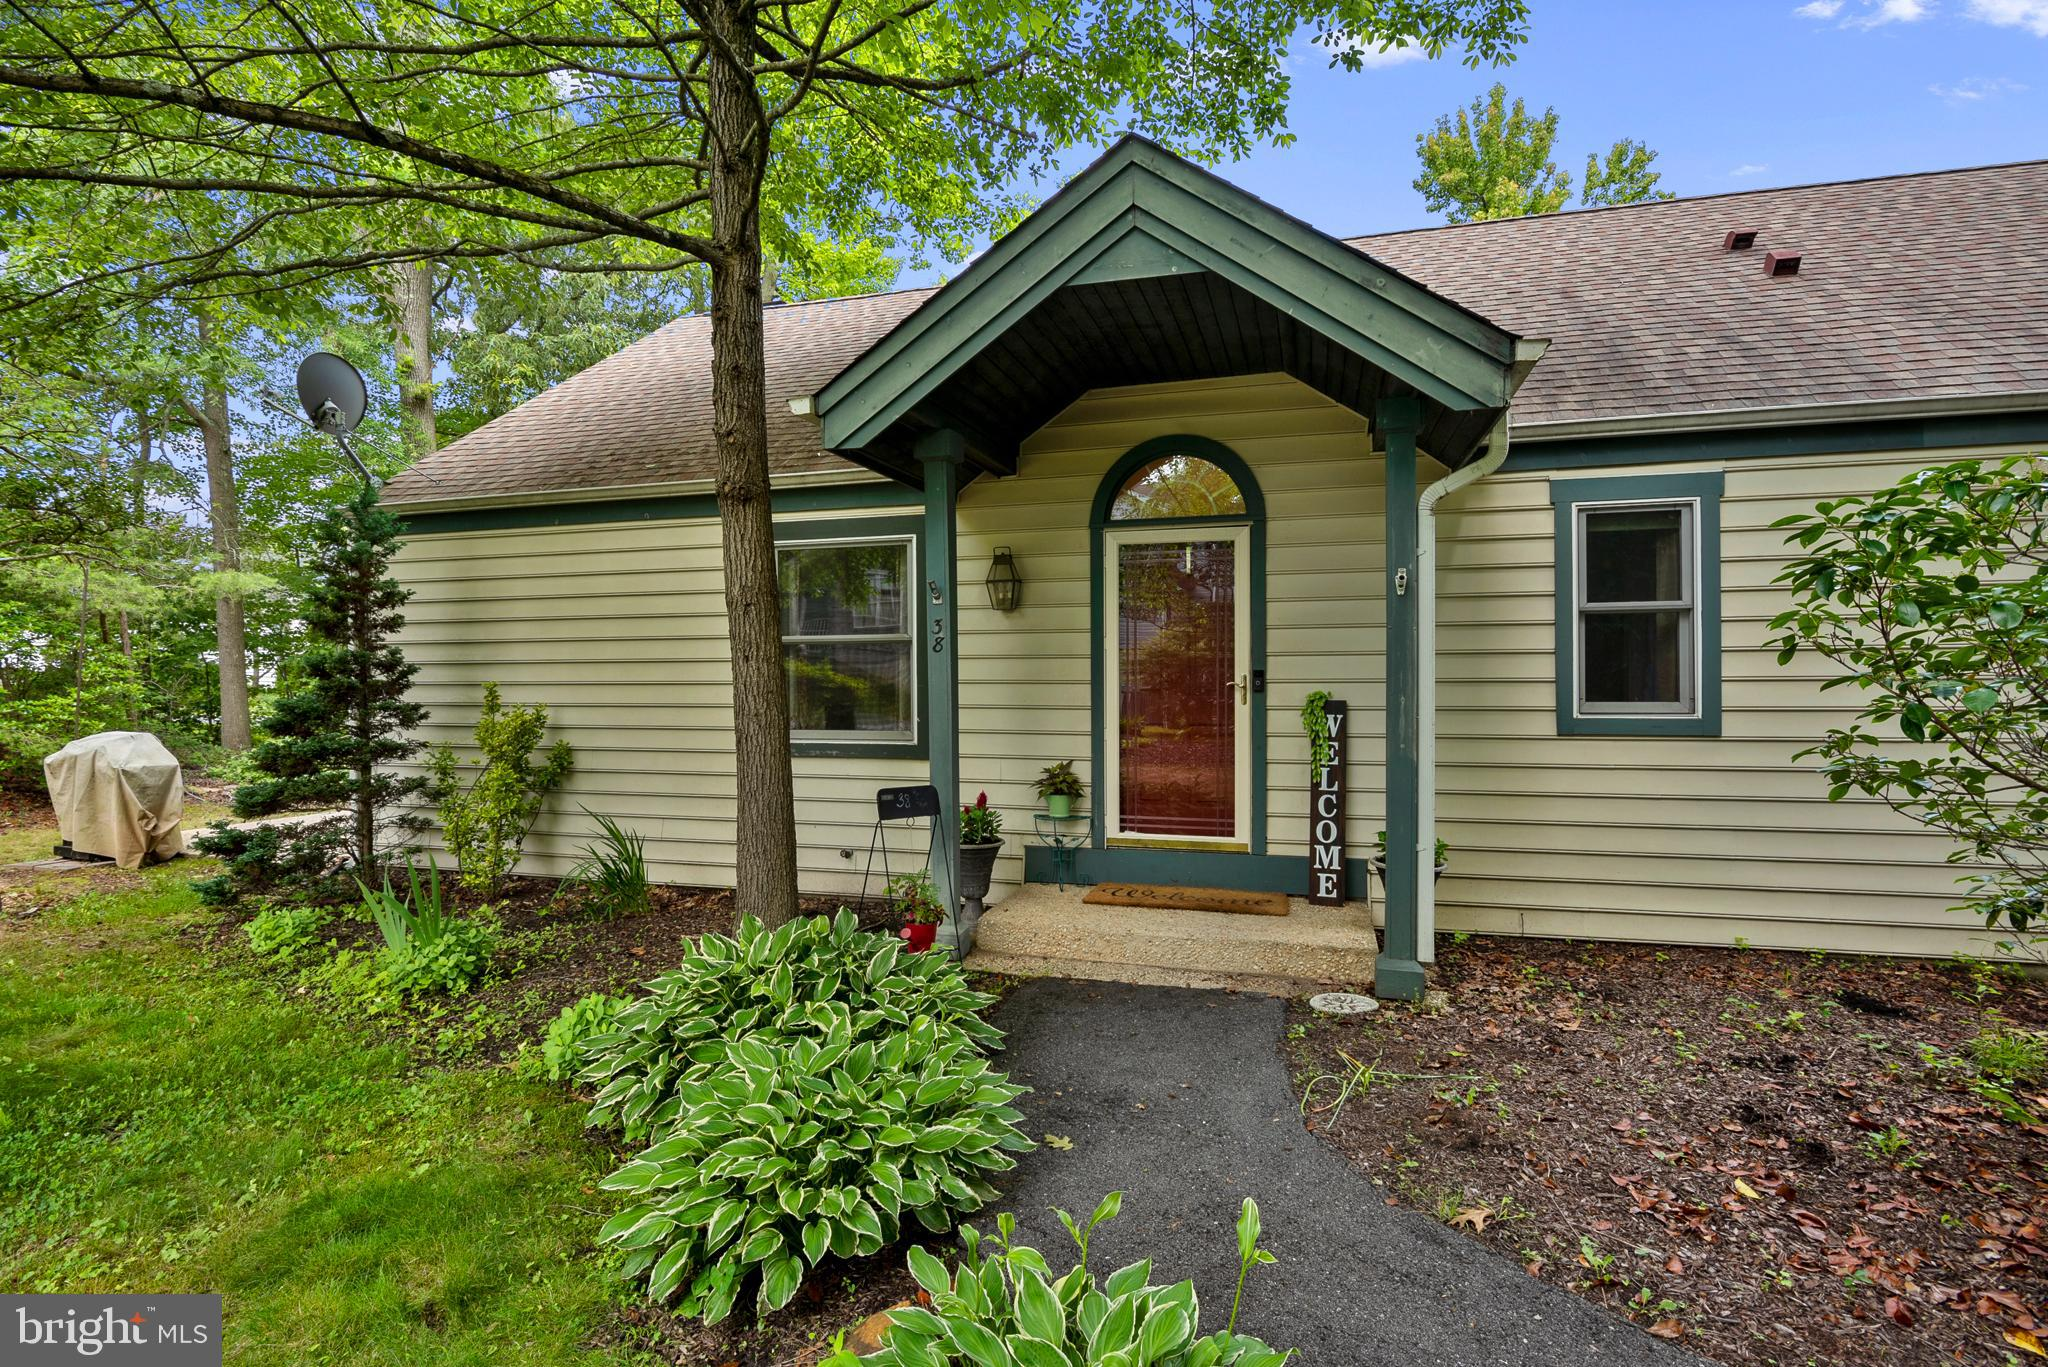 No showings until Saturday, June 19th at 9am.  This spacious and charming carriage house is sheltere